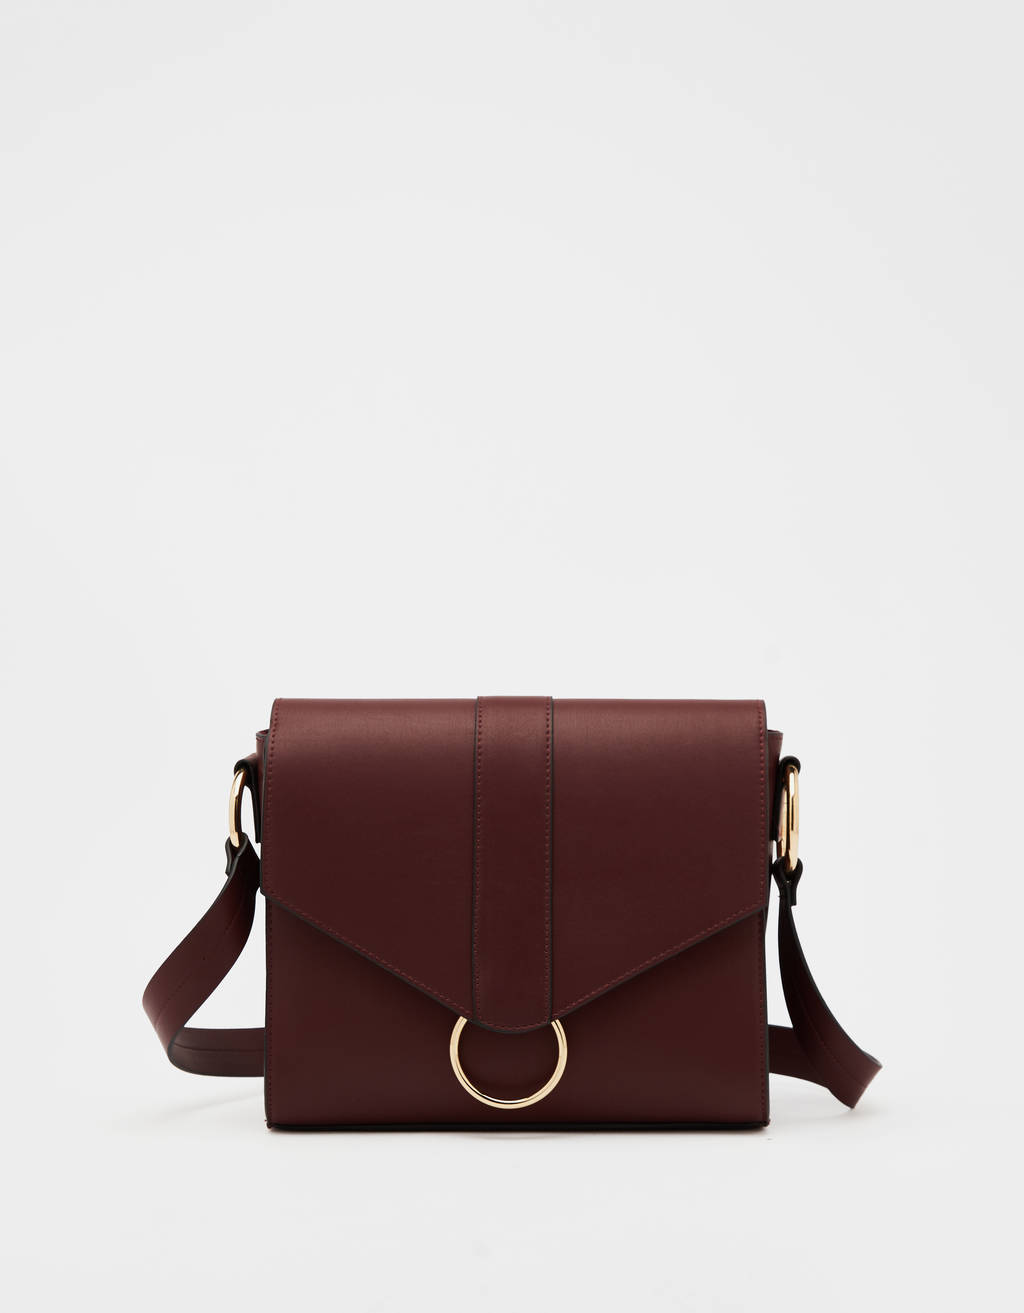 Crossbody bag with foldover flap and ring